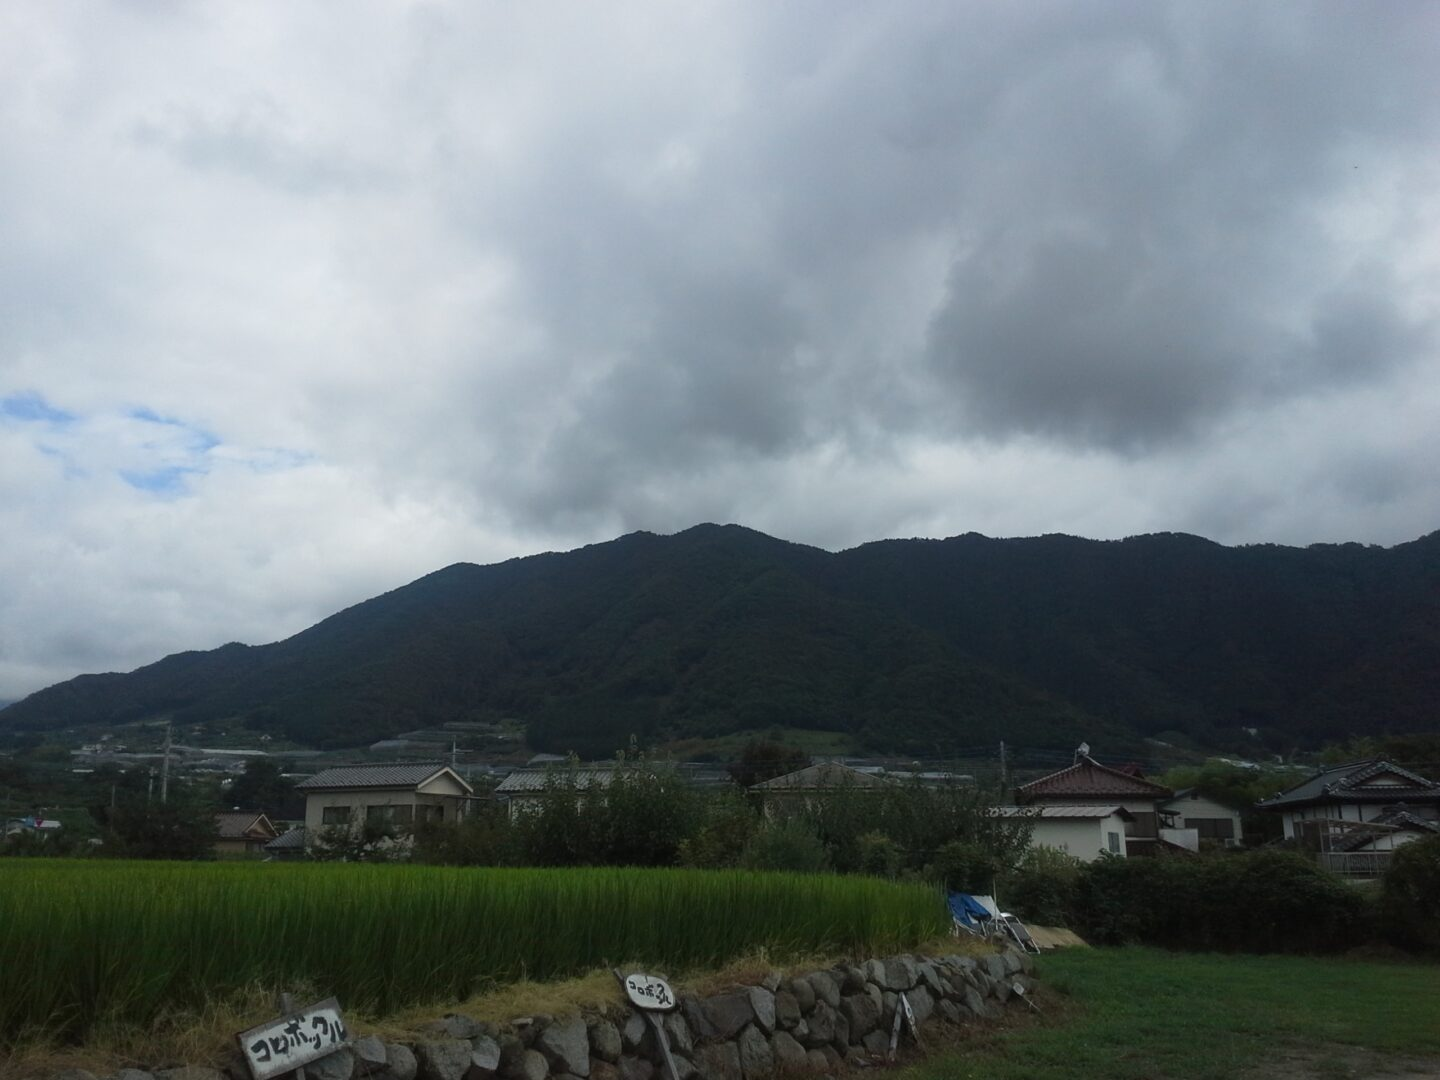 Divided Heaven - Japan blog - photo 12